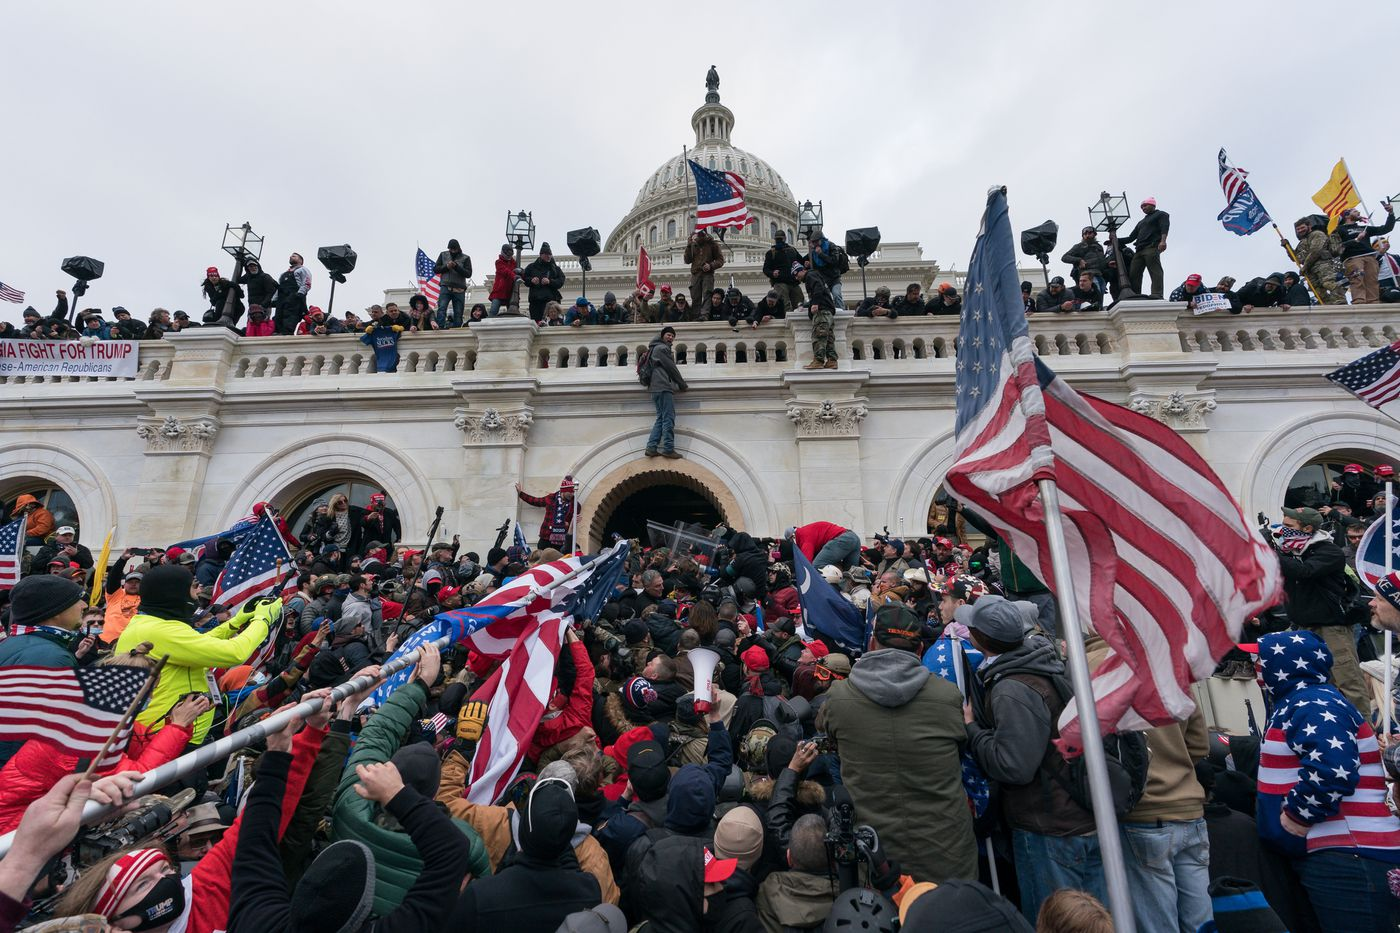 Pro-Trump supporters push back against police at the United States Capitol Building in Washington, D.C. on January 06, 2021.